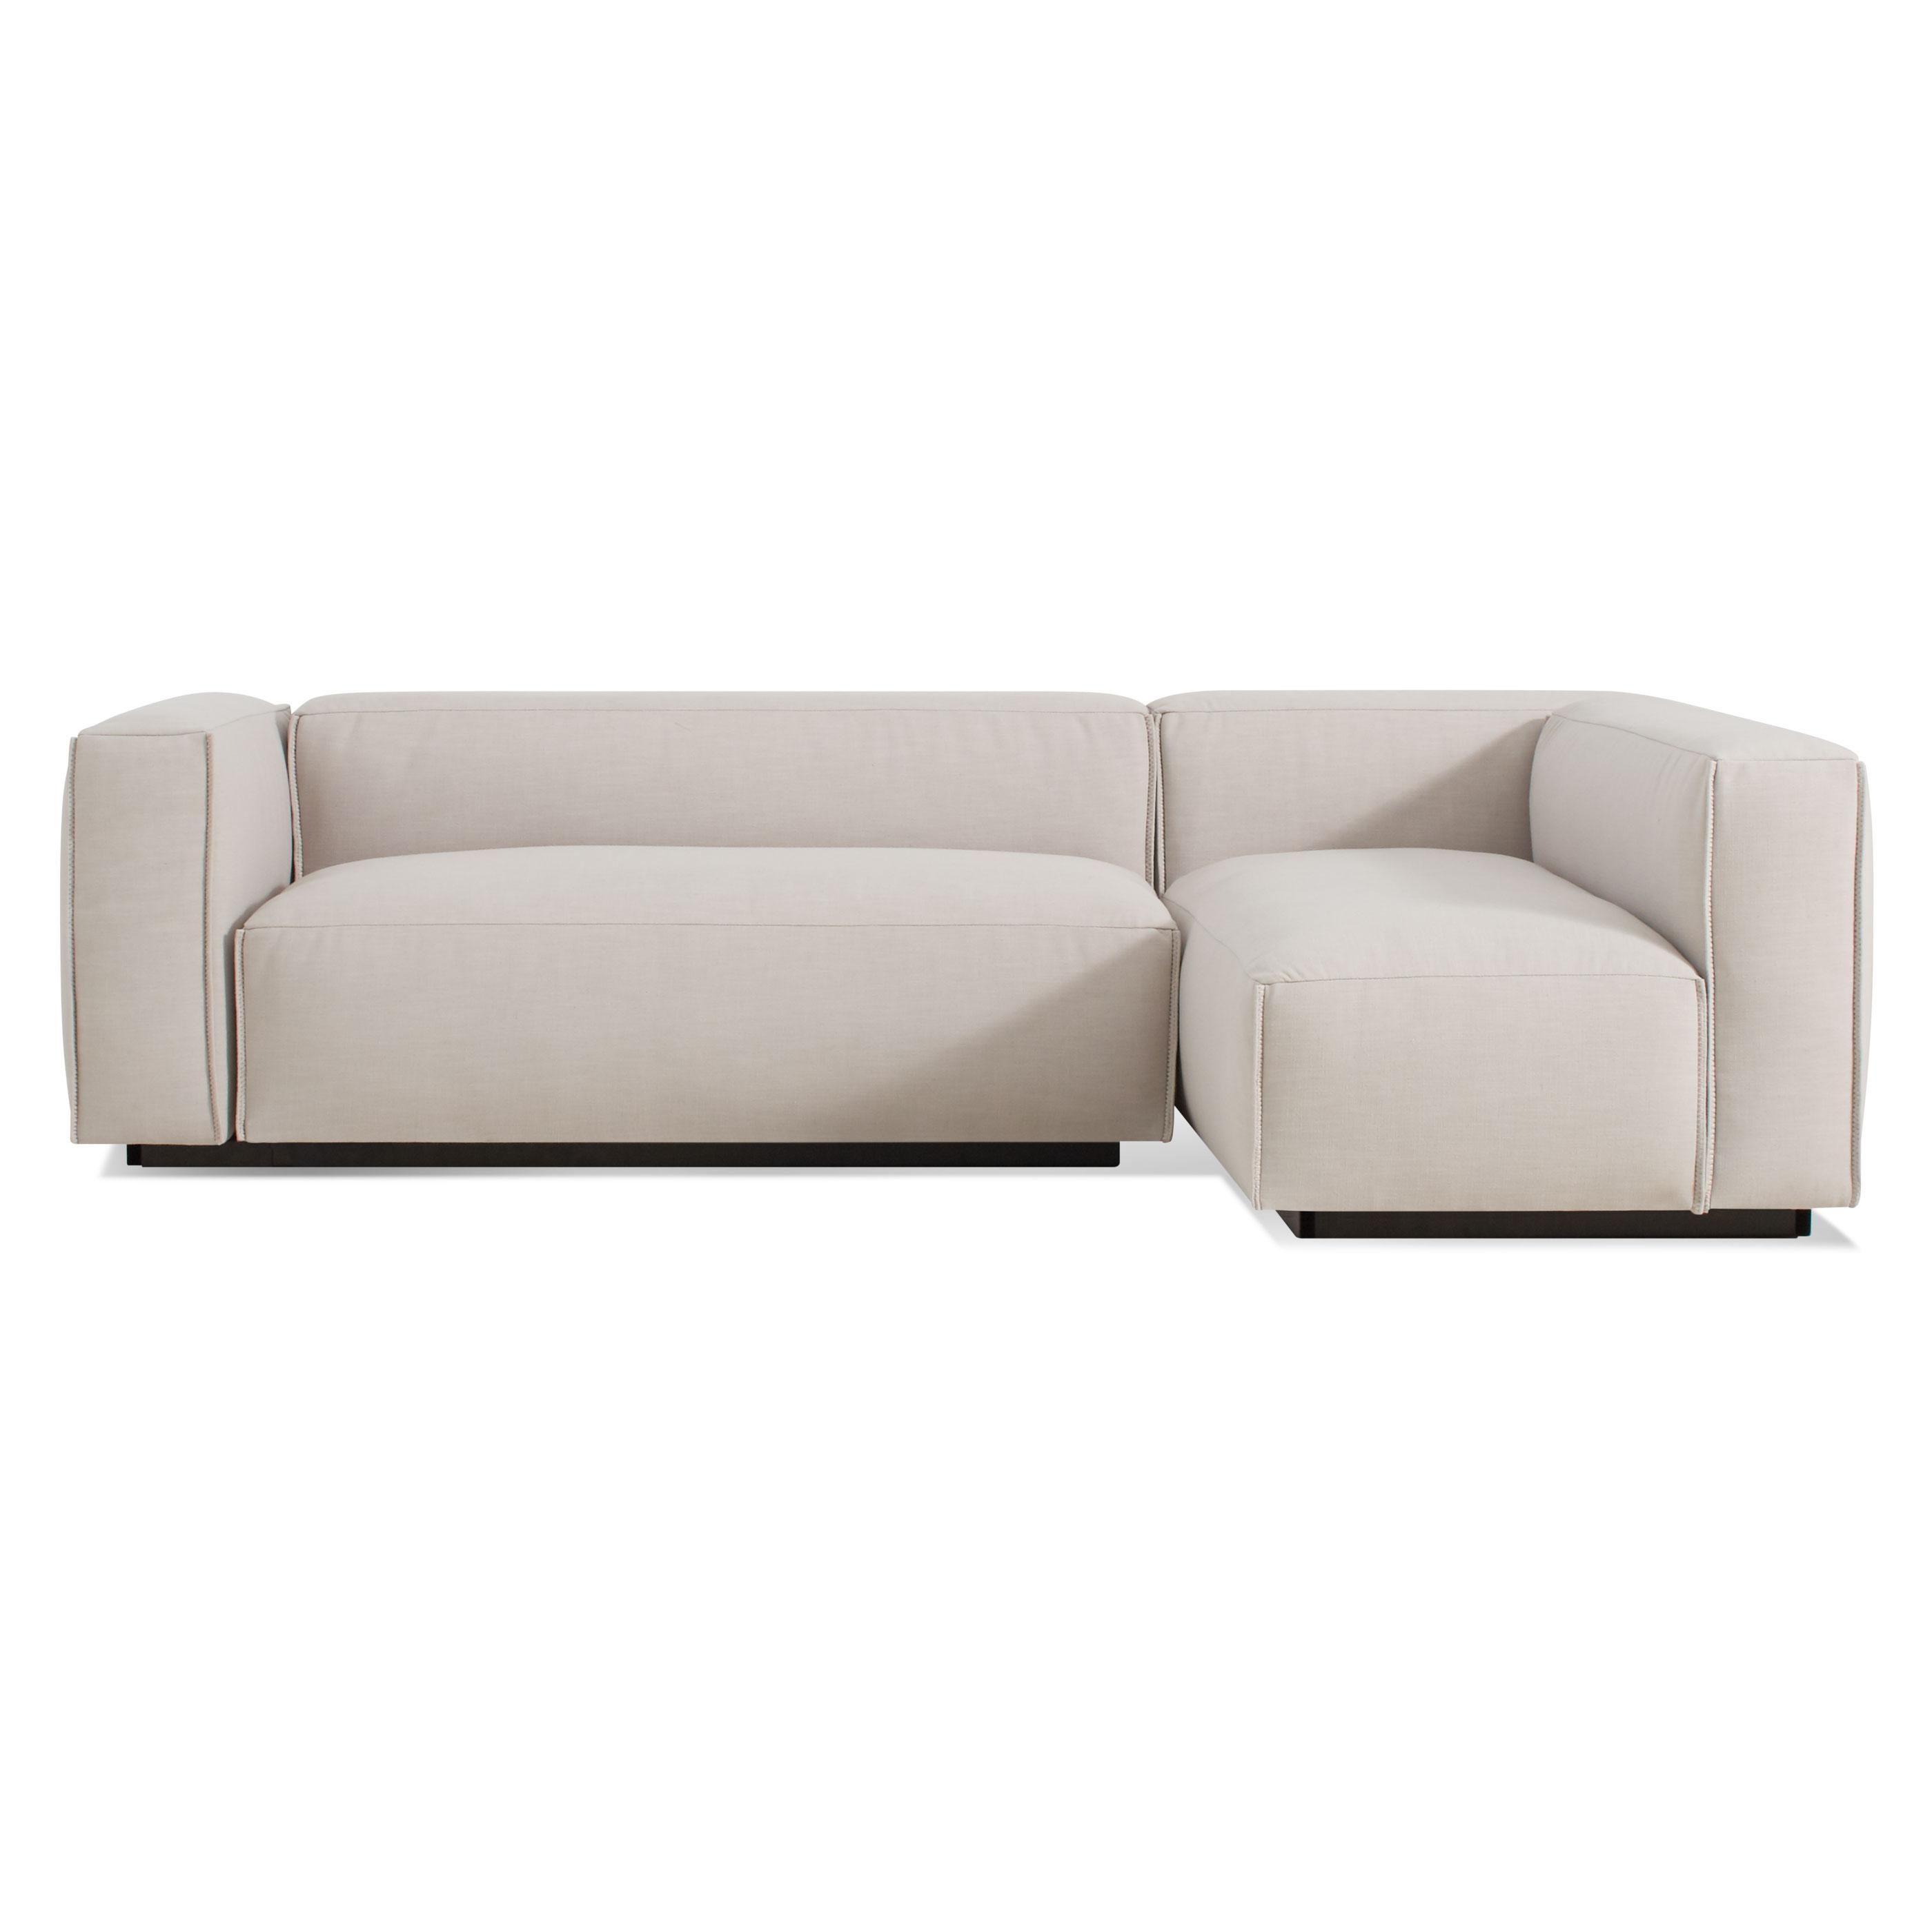 Cleon Small Modern Sectional Sofa | Blu Dot Intended For Mini Sectional Sofas (Image 3 of 20)